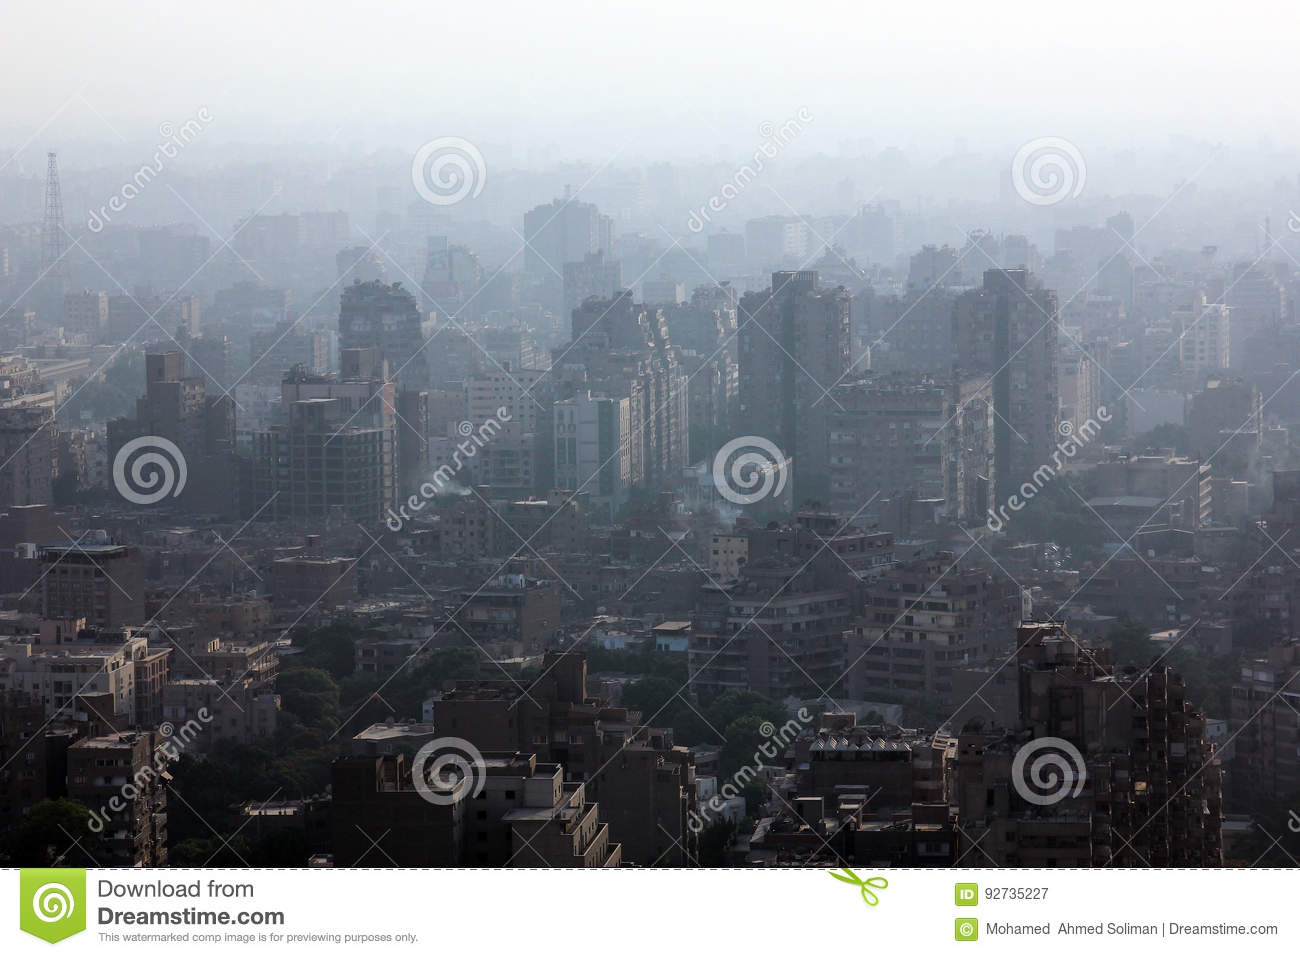 Aerial view of crowded cairo with hazy air condition in egypt